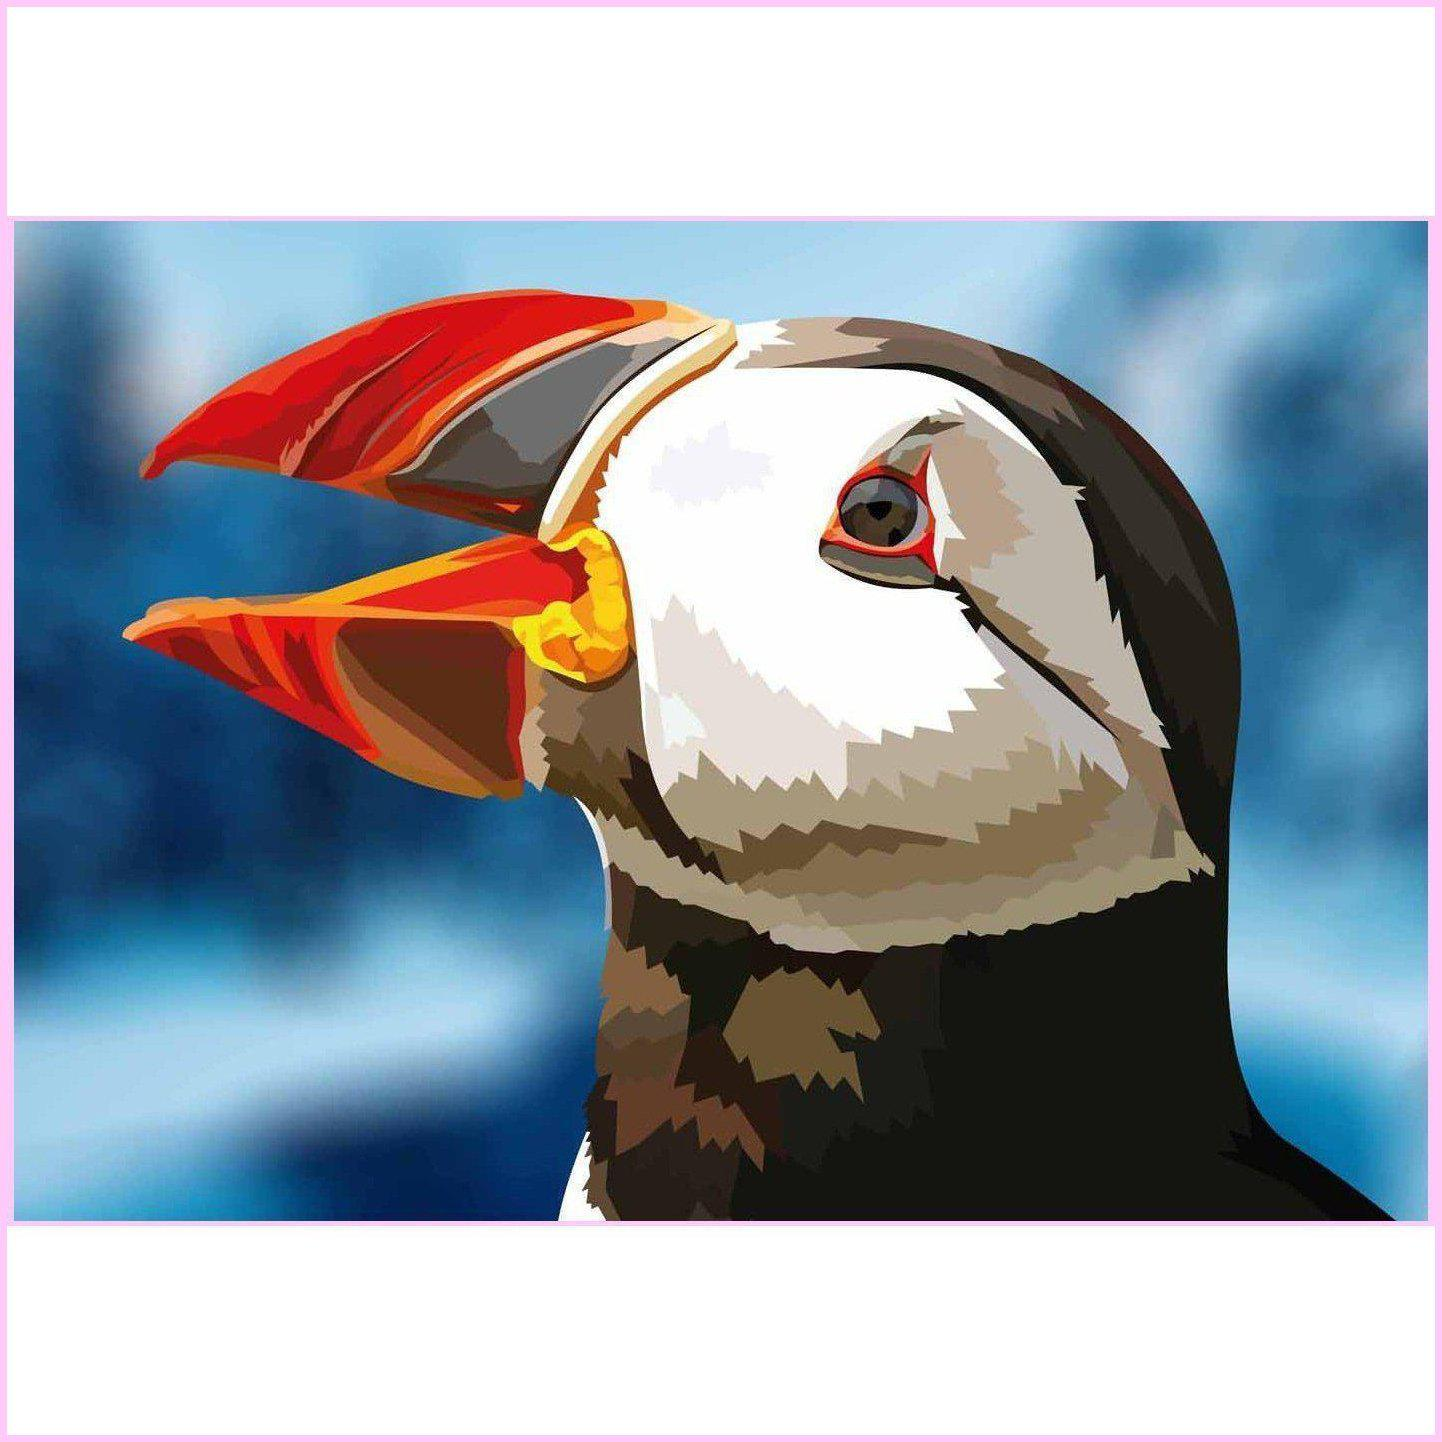 Brilliant Puffin Bird-Diamond Painting Kit-35x50cm (14x20 in)-Square-Heartful Diamonds